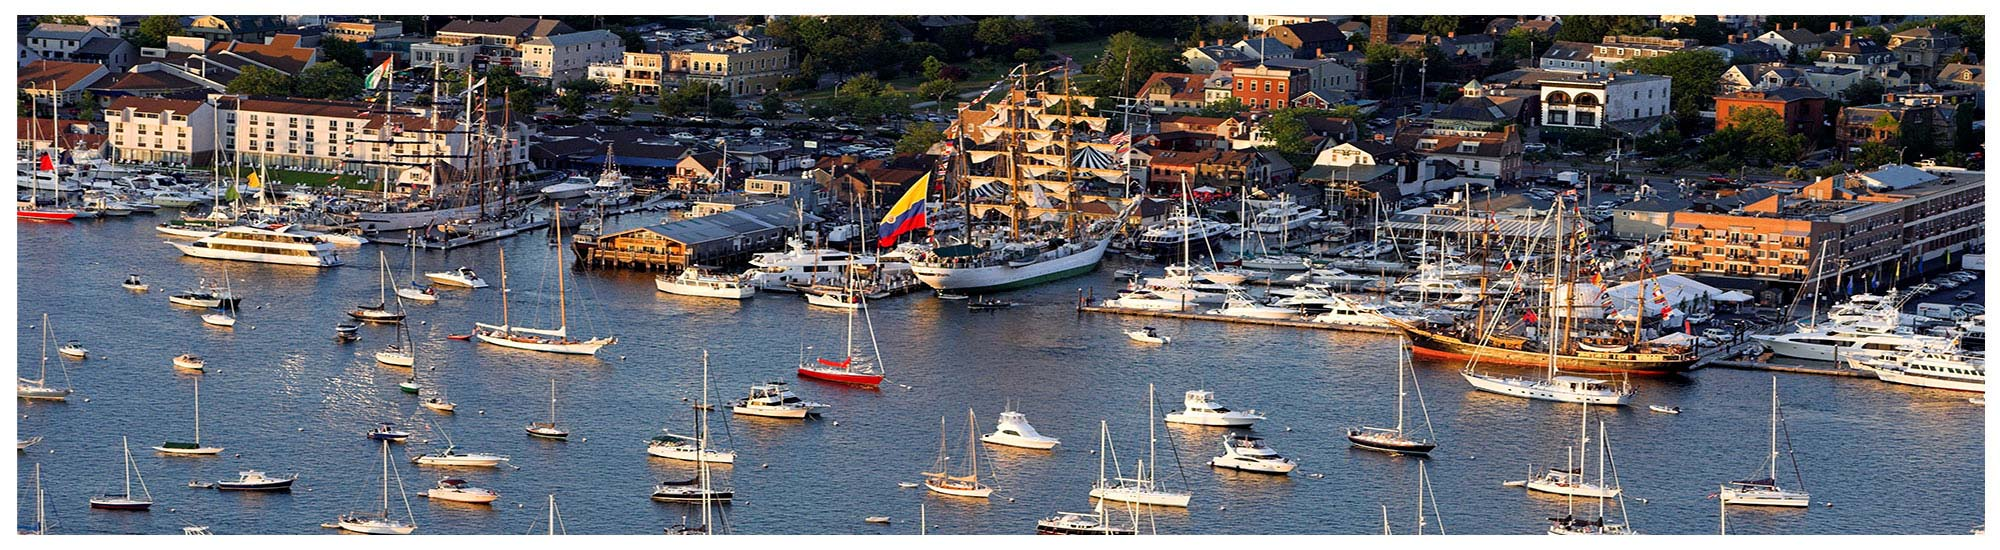 Newport RI boating and sailing information including charters and dockage facilities